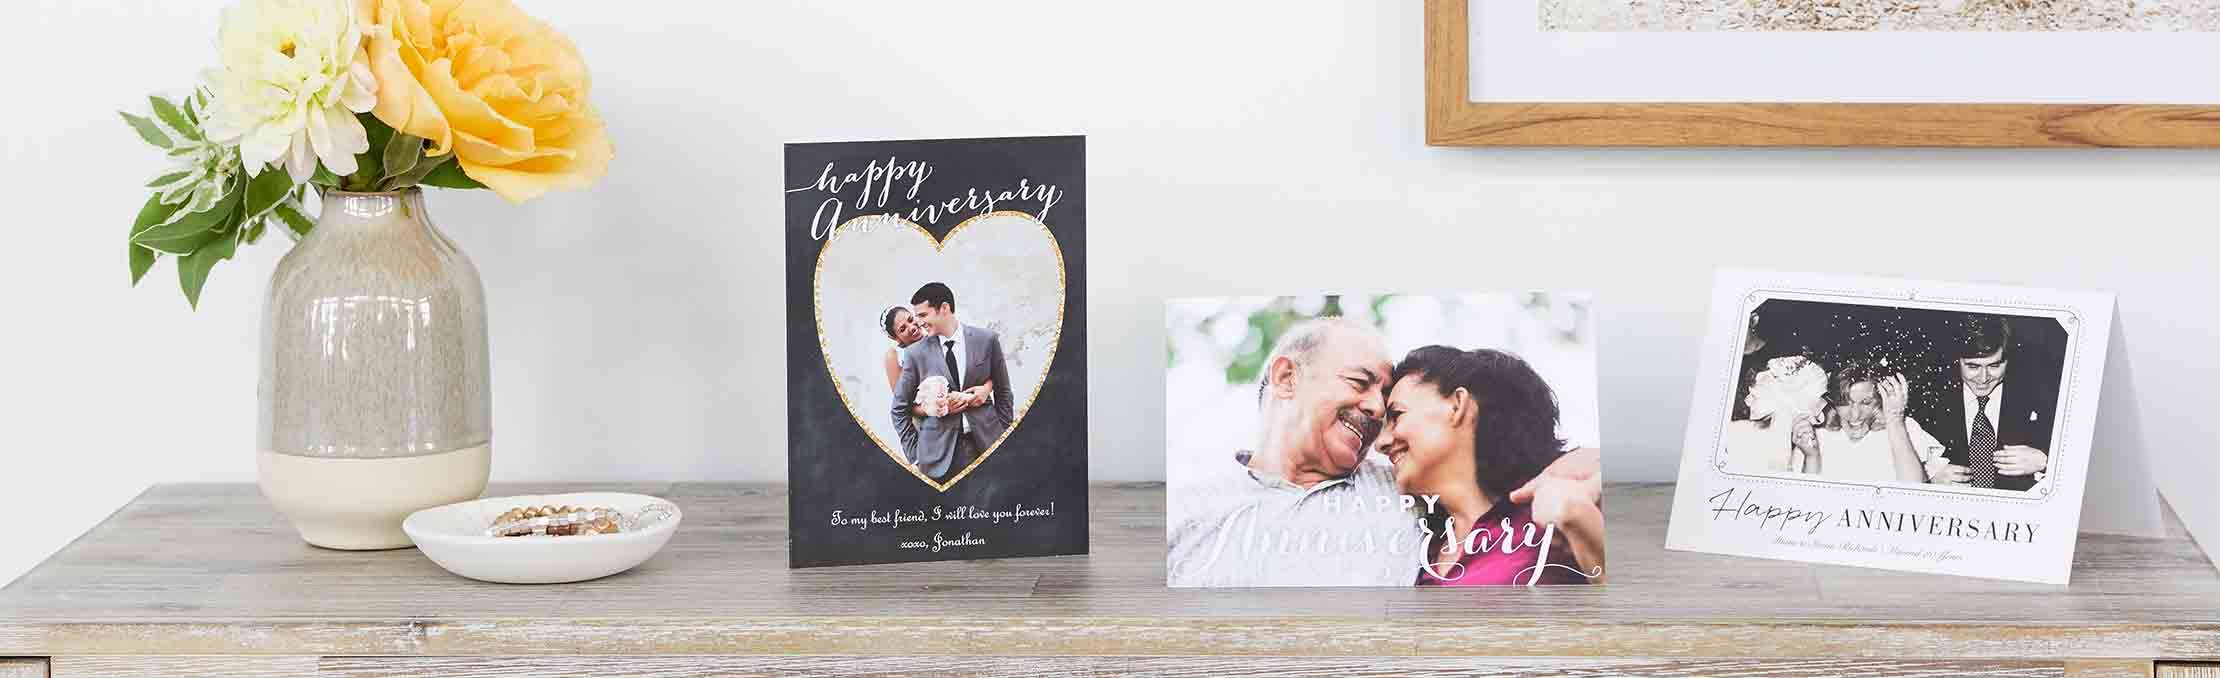 last minute wedding anniversary card ideas walgreens photo blog